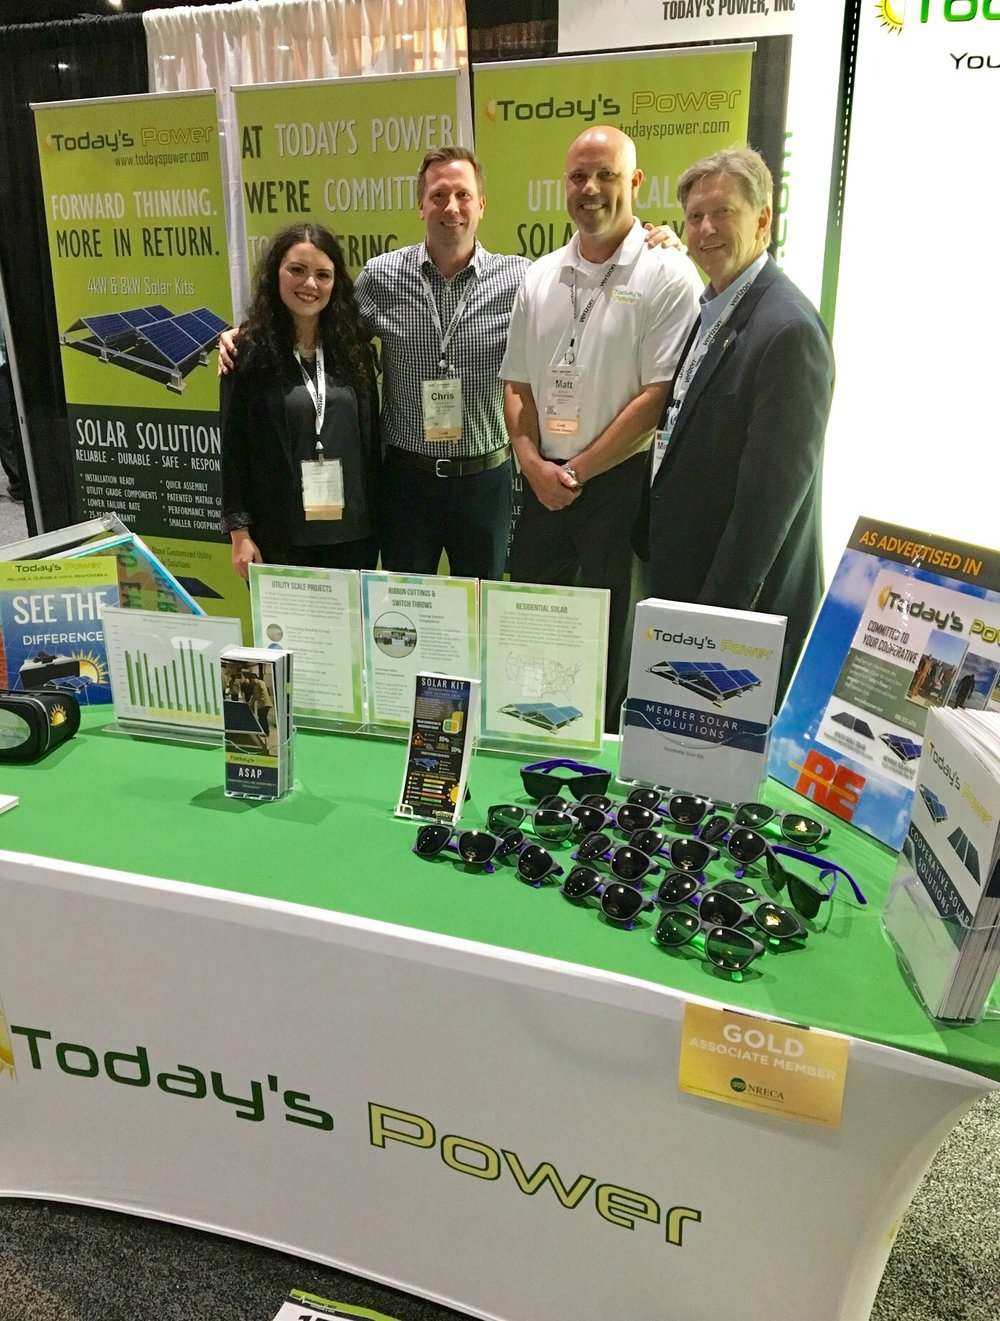 From Left to Right:  Jennah Denney  WOW Coordinator,  Chris Burnley  Director of Business Development,  Matt Irving,  Director of Operations,  and Michael Henderson,  President of Today's Power, Inc. & CFO of The Electric Cooperatives of Arkansas.